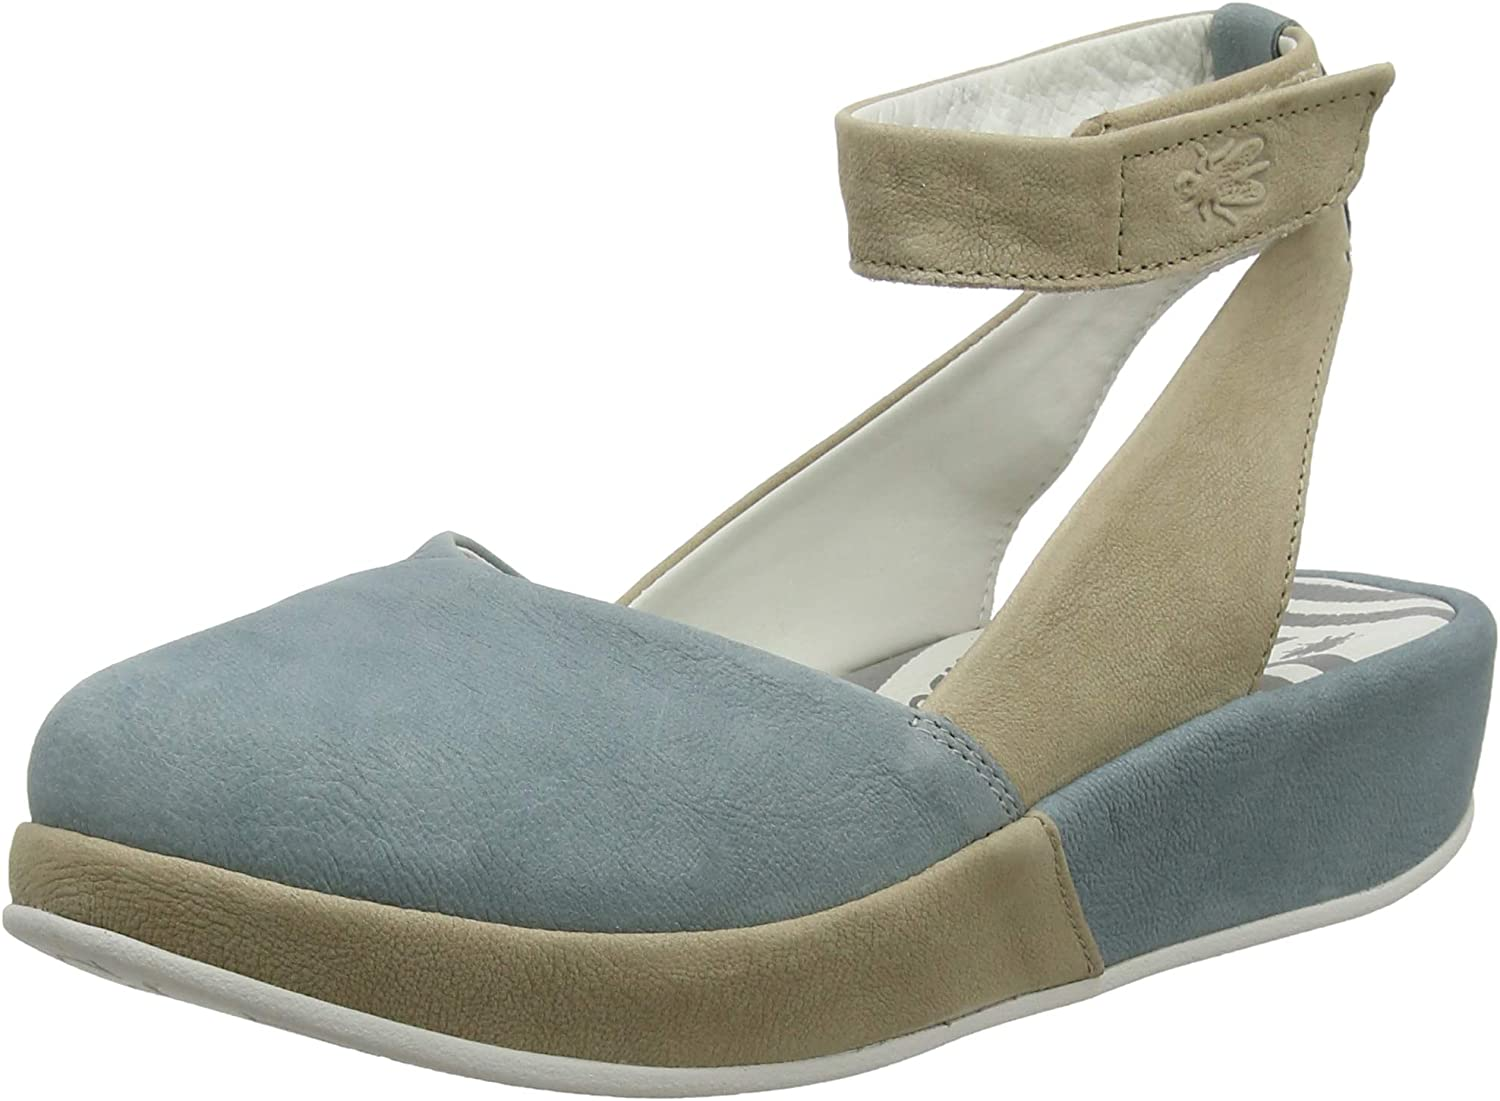 FLY London Women's Limited price Ranking TOP19 Ankle Ballet Flats Strap